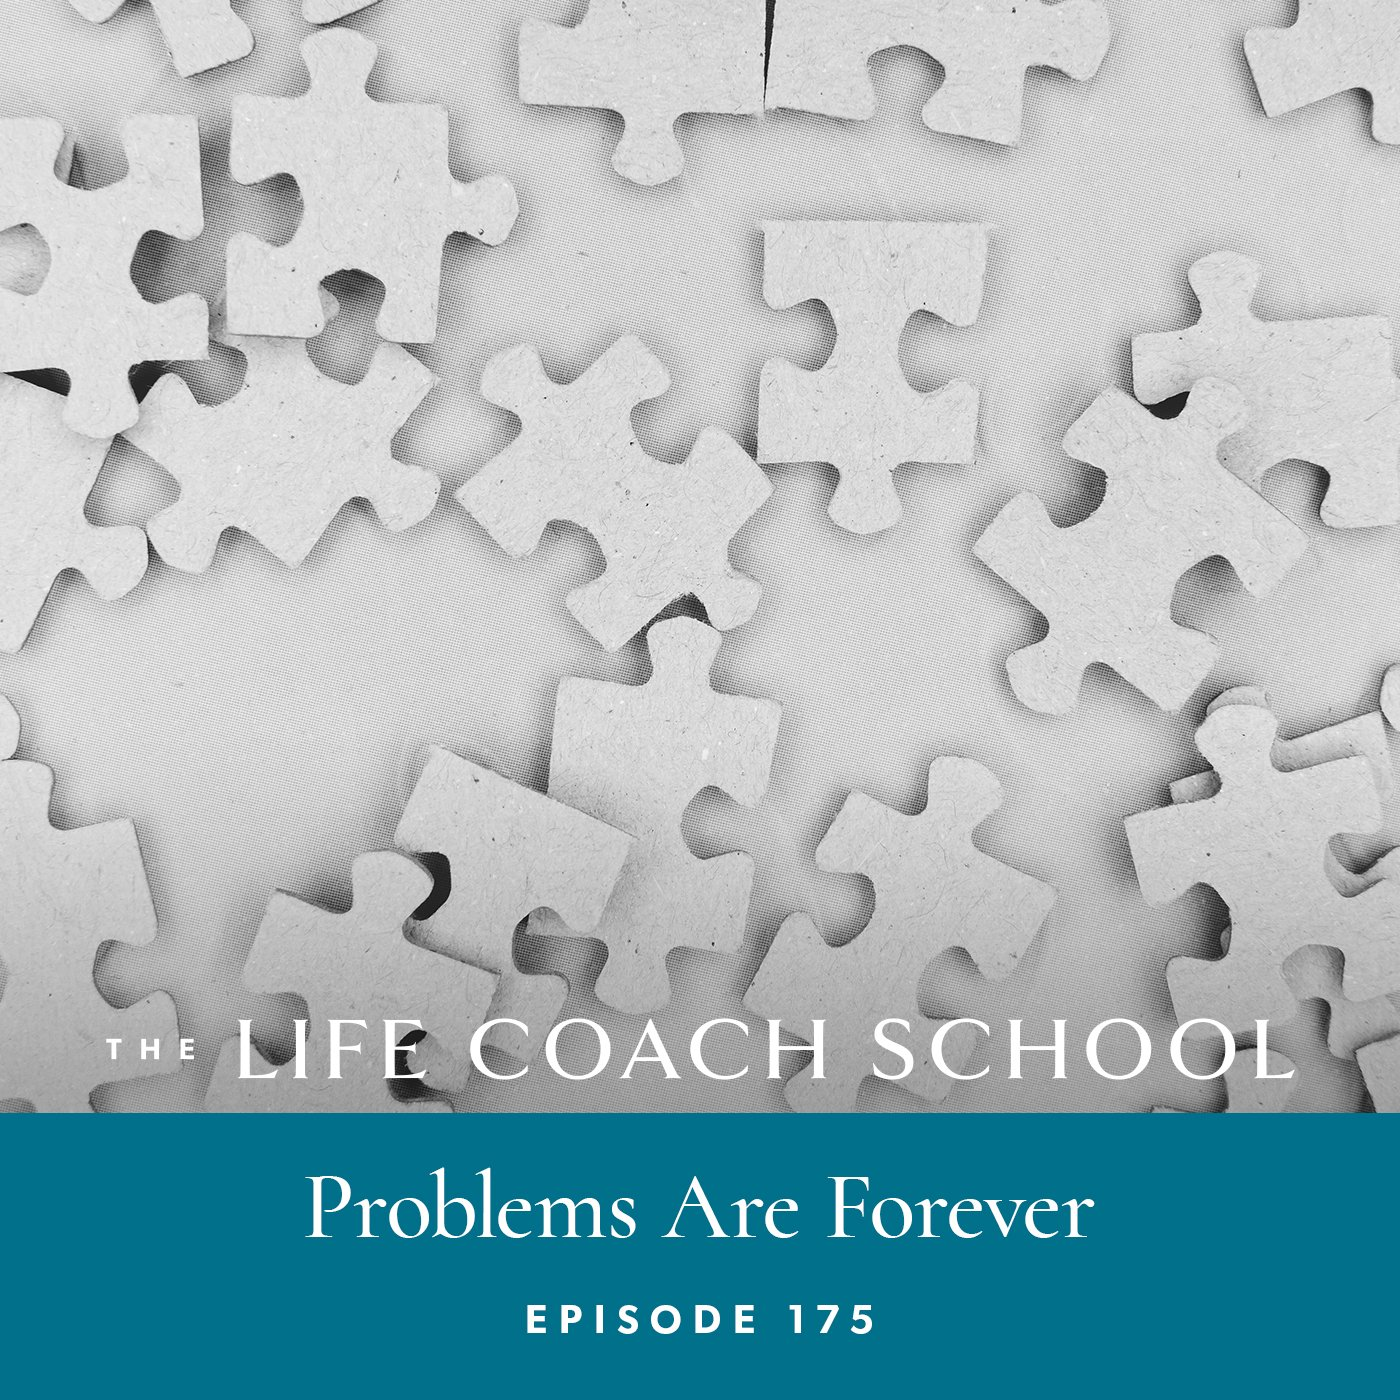 The Life Coach School Podcast with Brooke Castillo | Episode 175 | Problems Are Forever